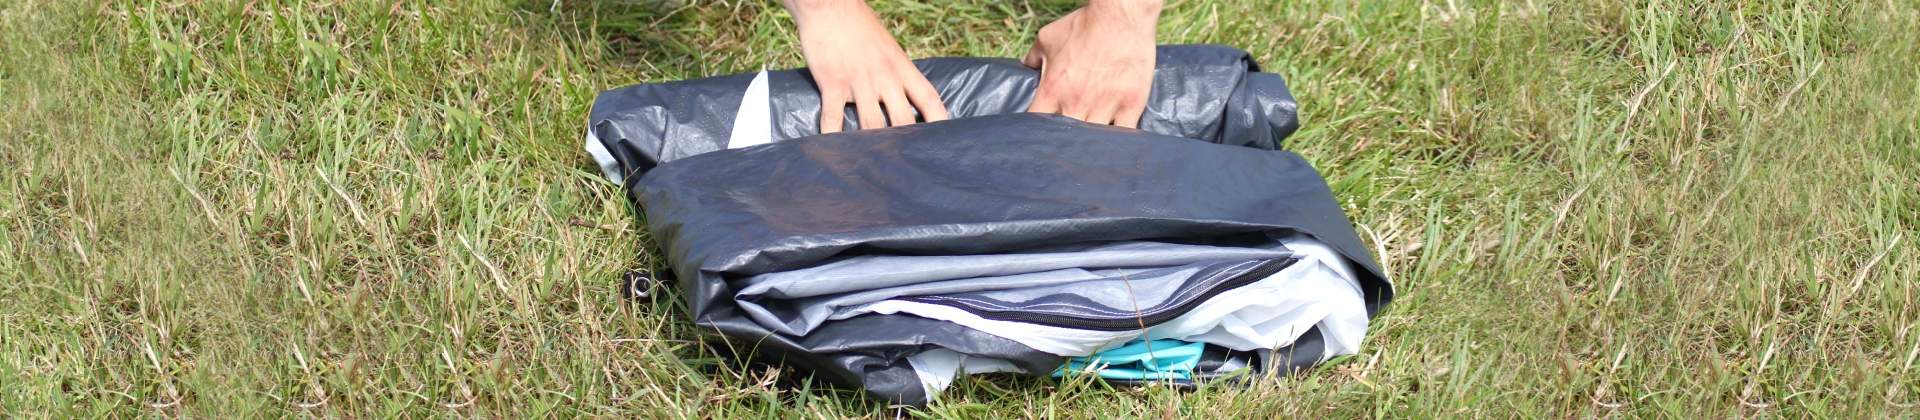 How to Fold a Tent – Fast and Stress-Free Methods!